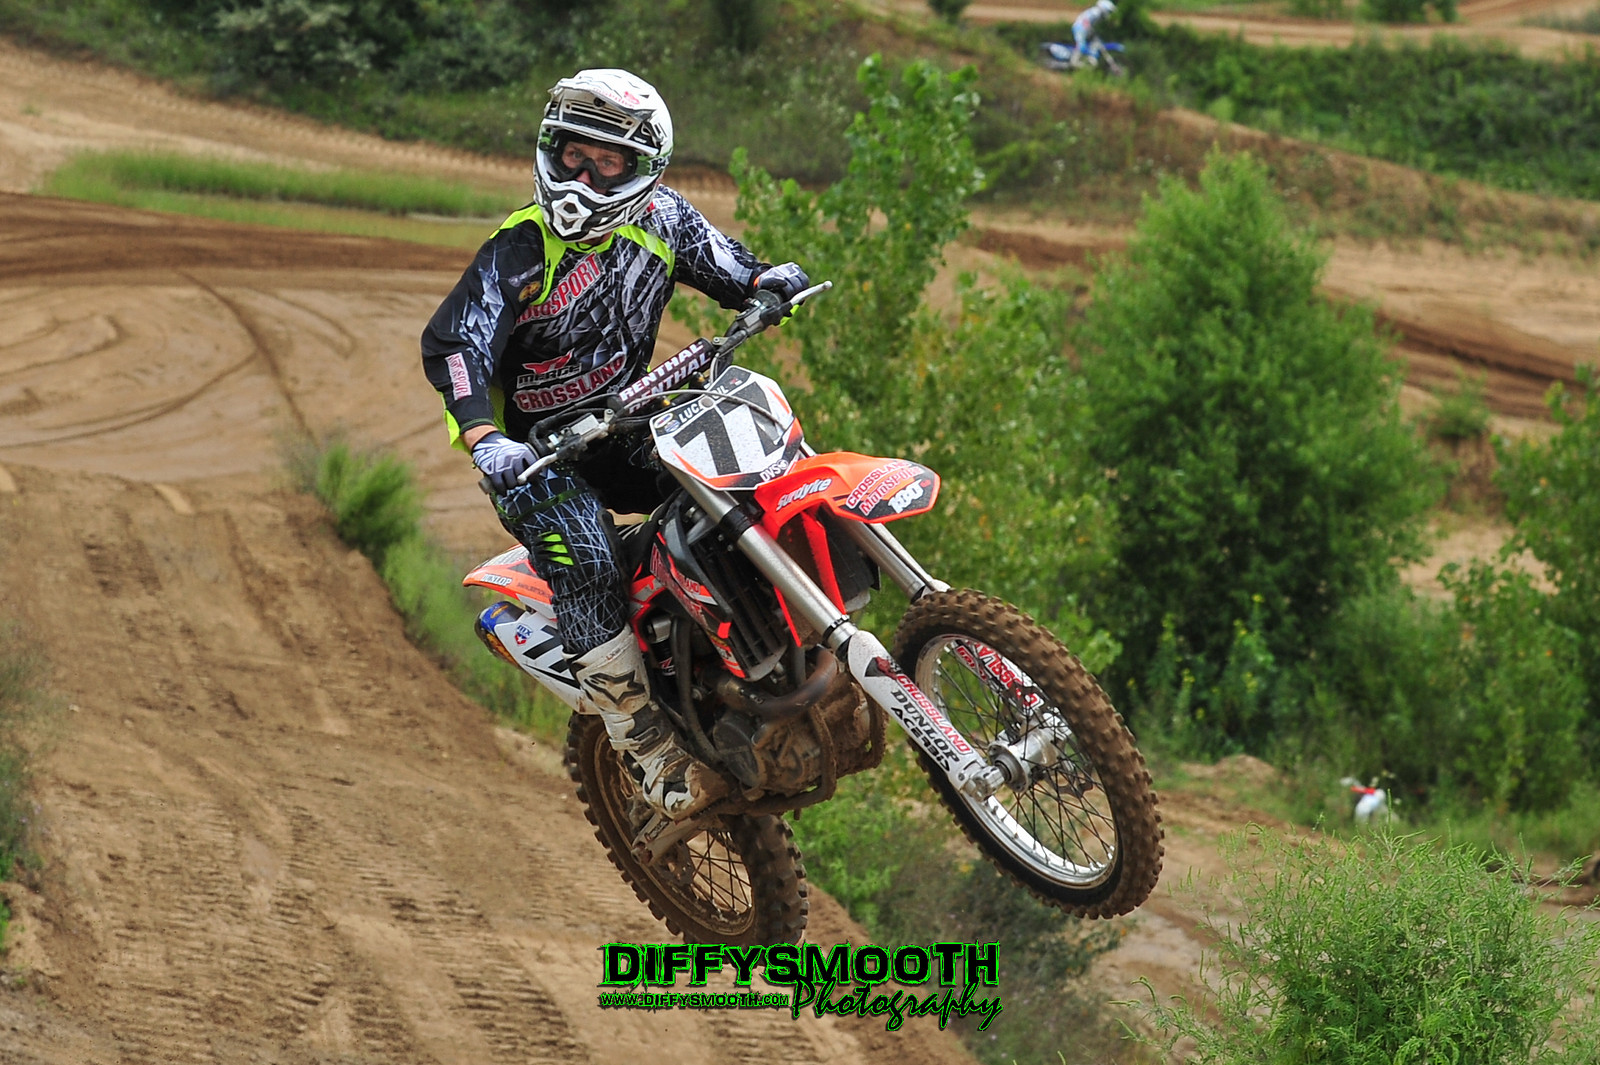 Jimmy Albertson - DiffySmooth - Motocross Pictures - Vital MX